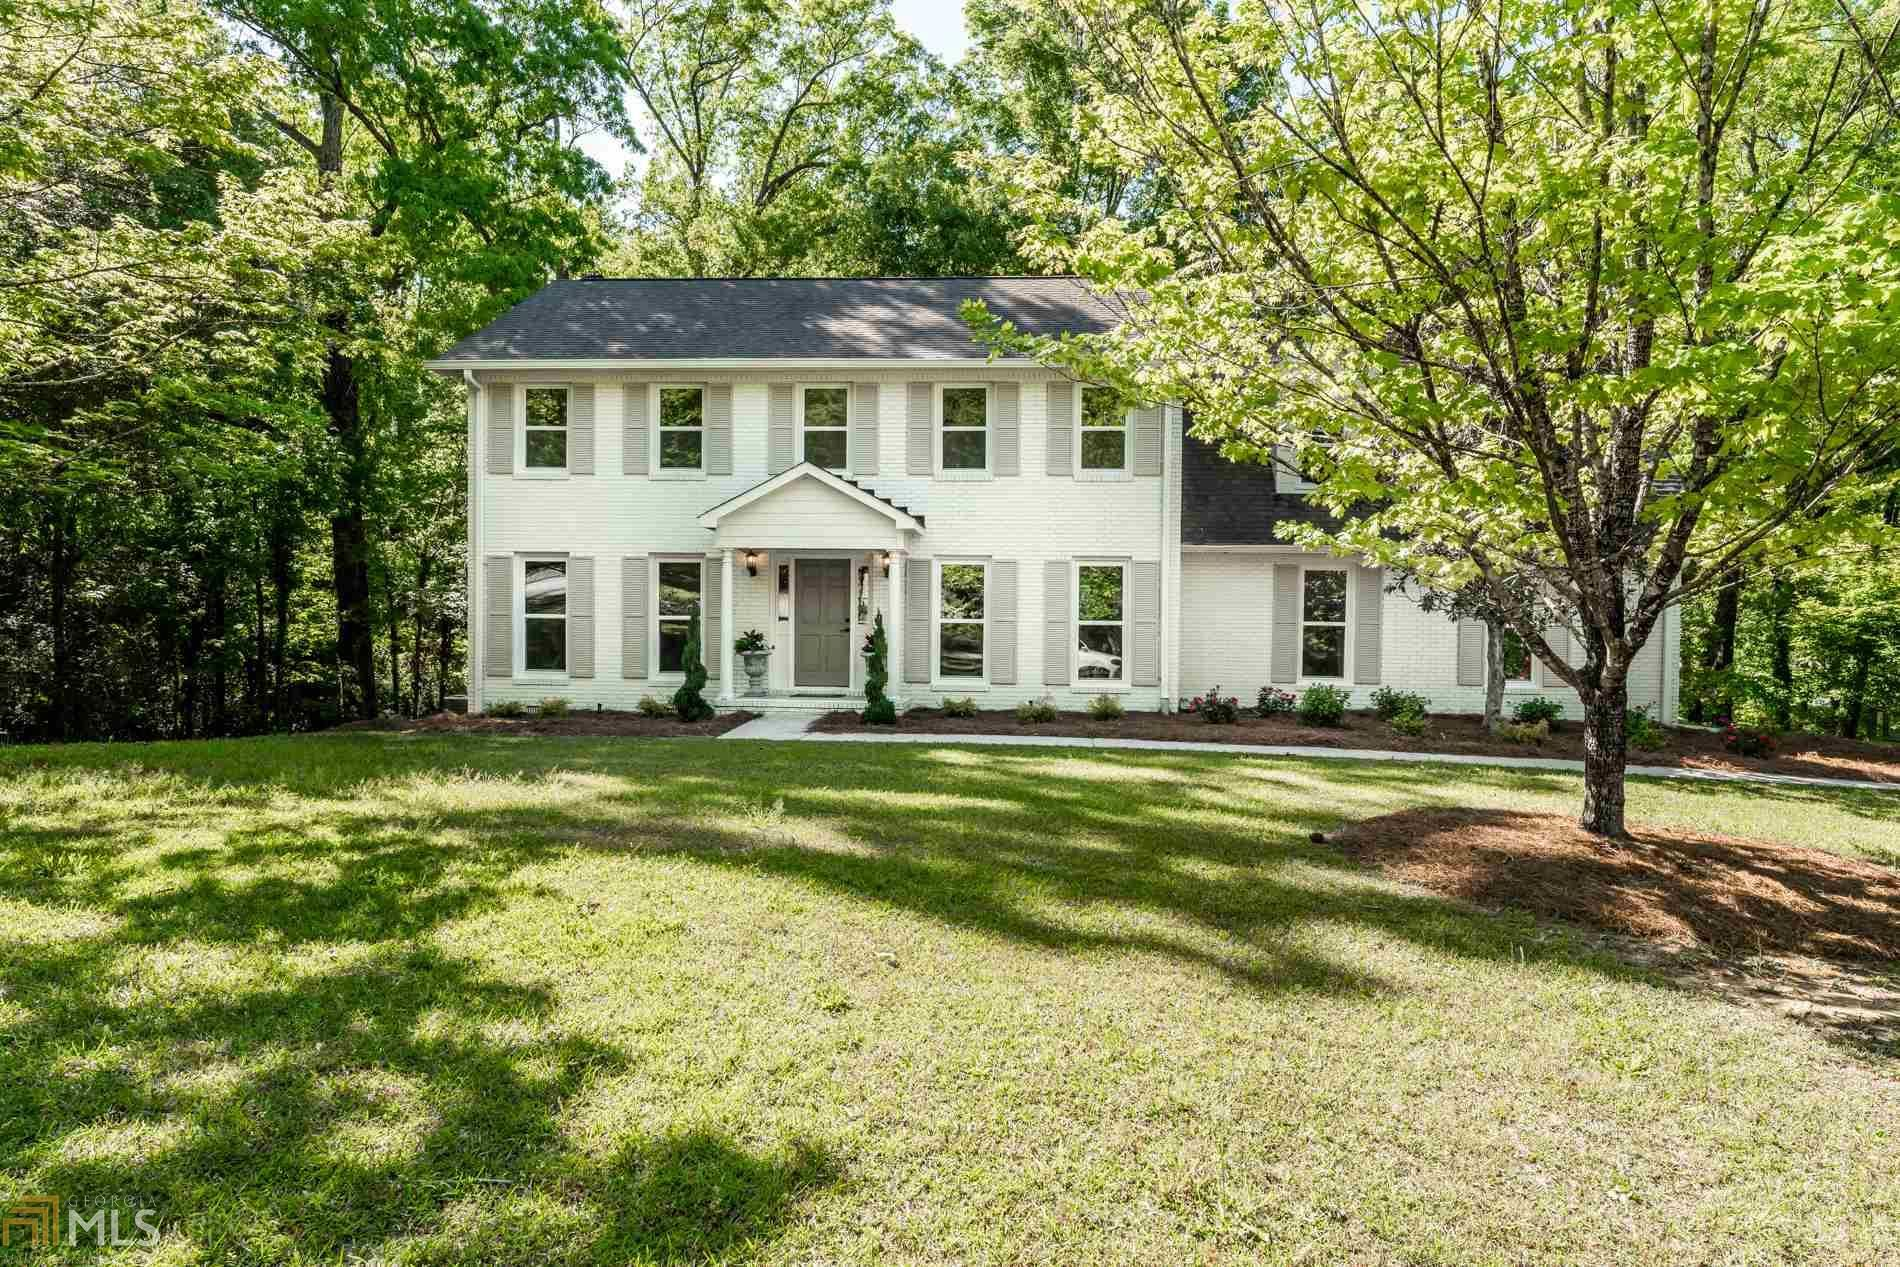 4720 Wesleyan Woods Dr, Macon, GA 31210 - MLS#: 8965558